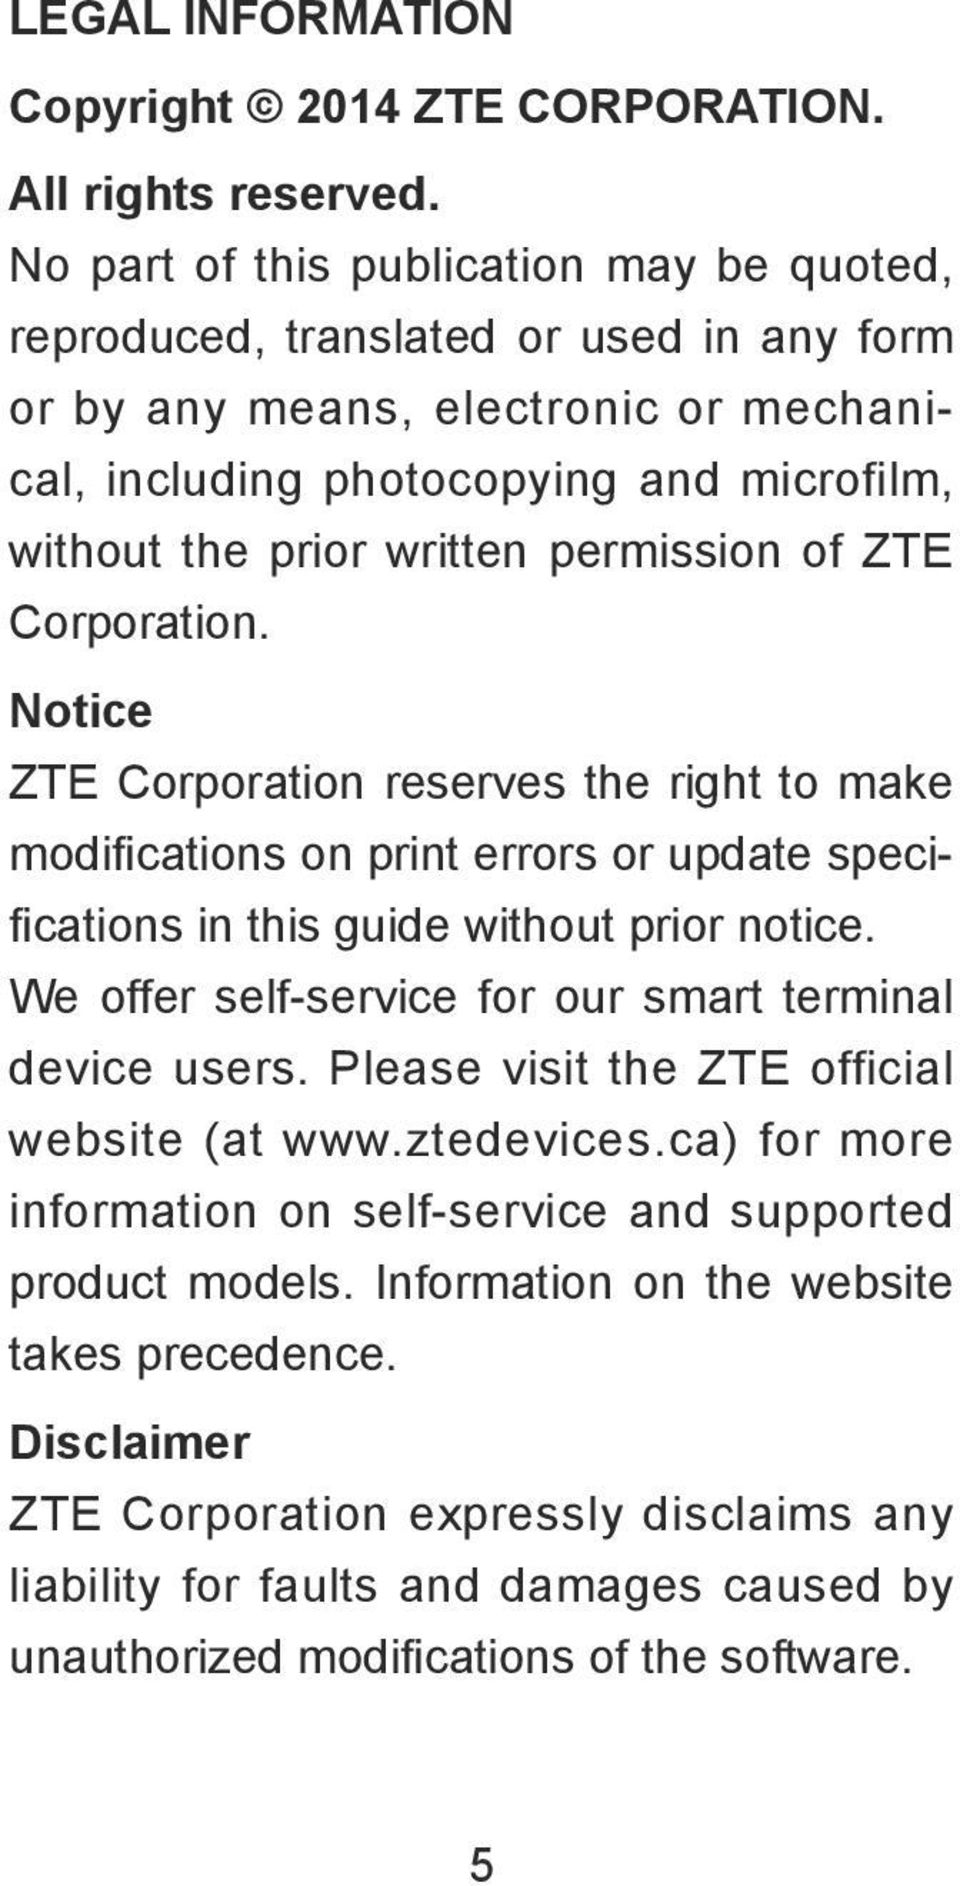 permission of ZTE Corporation. Notice ZTE Corporation reserves the right to make modifications on print errors or update specifications in this guide without prior notice.